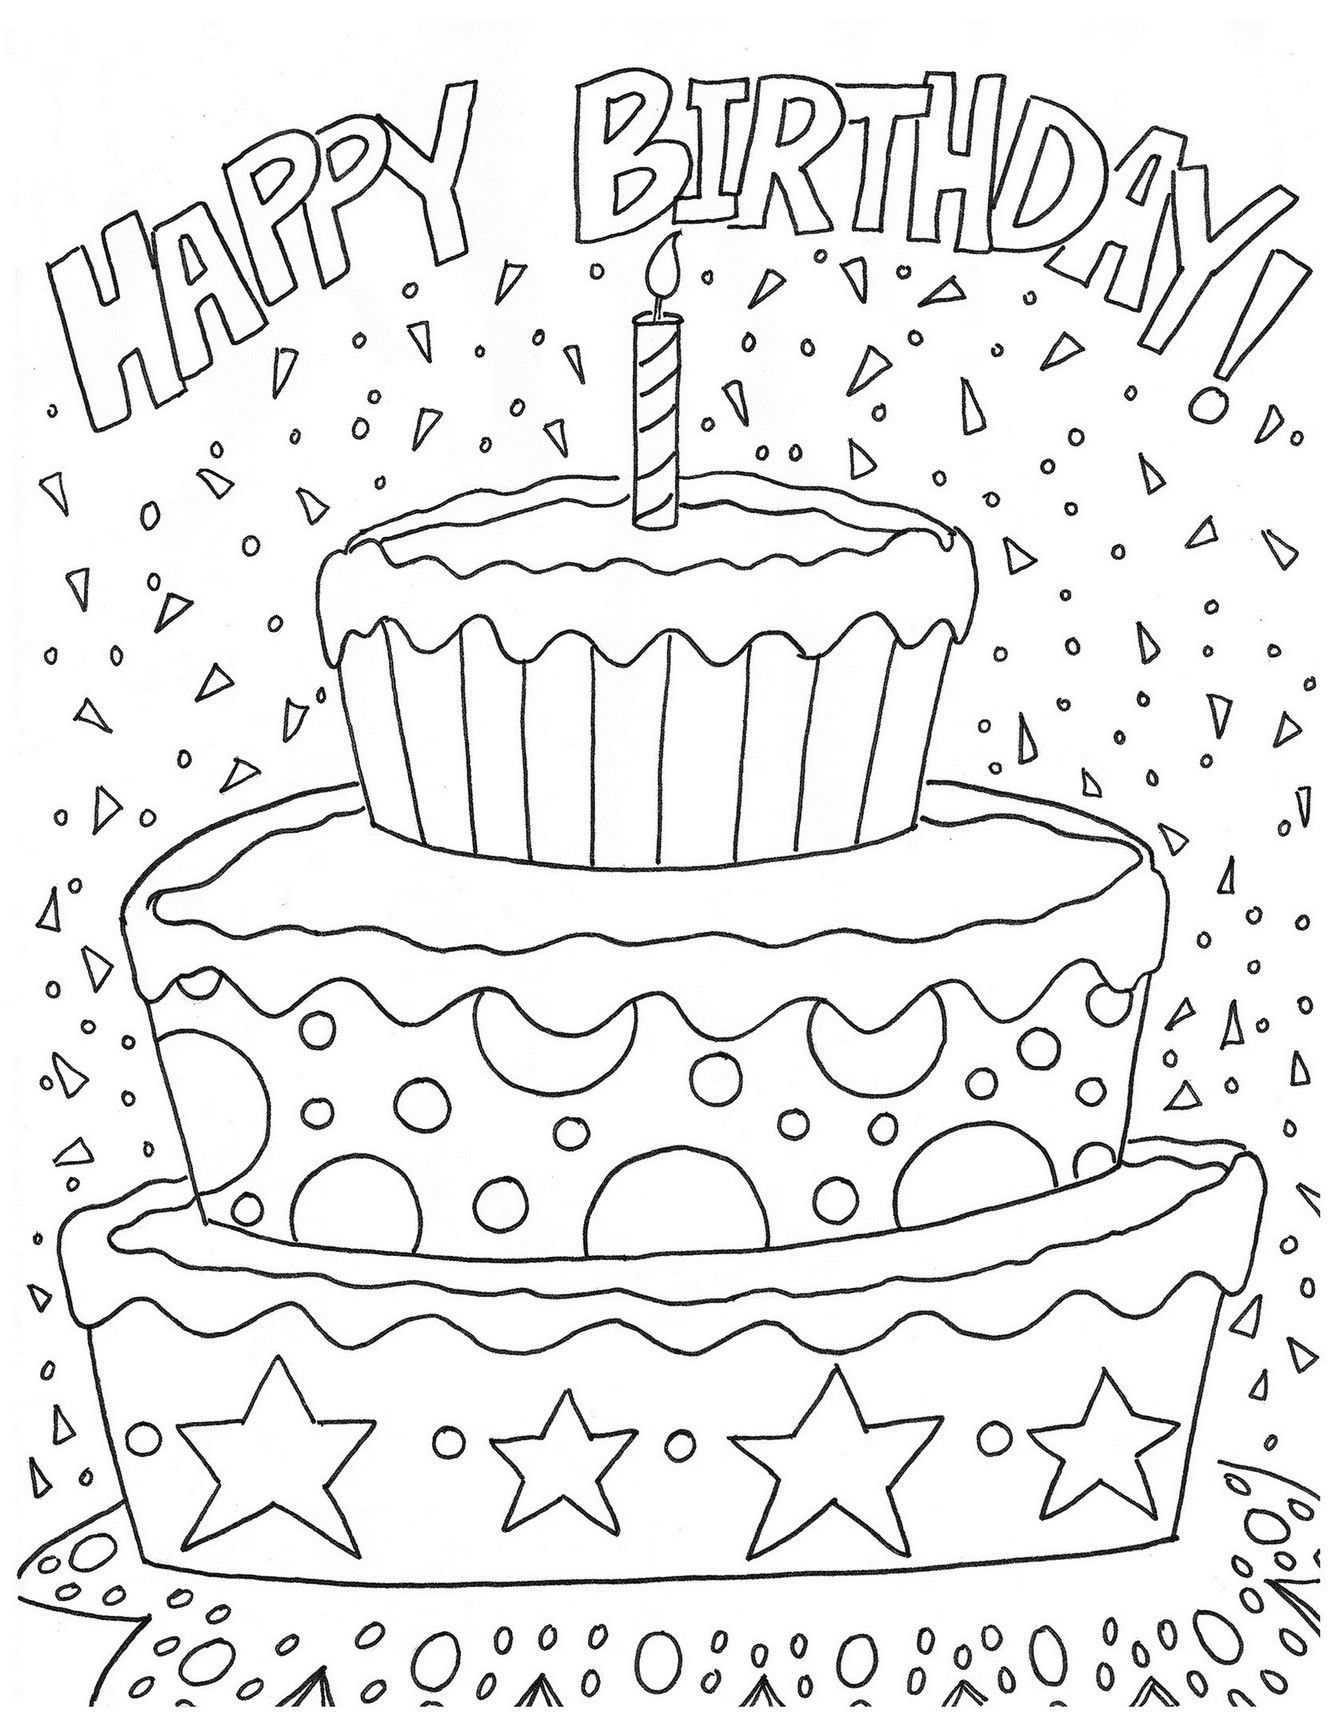 Coloring Page Happy Birthday Printable Coloring Birthday Cards Happy Birthday Coloring Pages Happy Birthday Printable